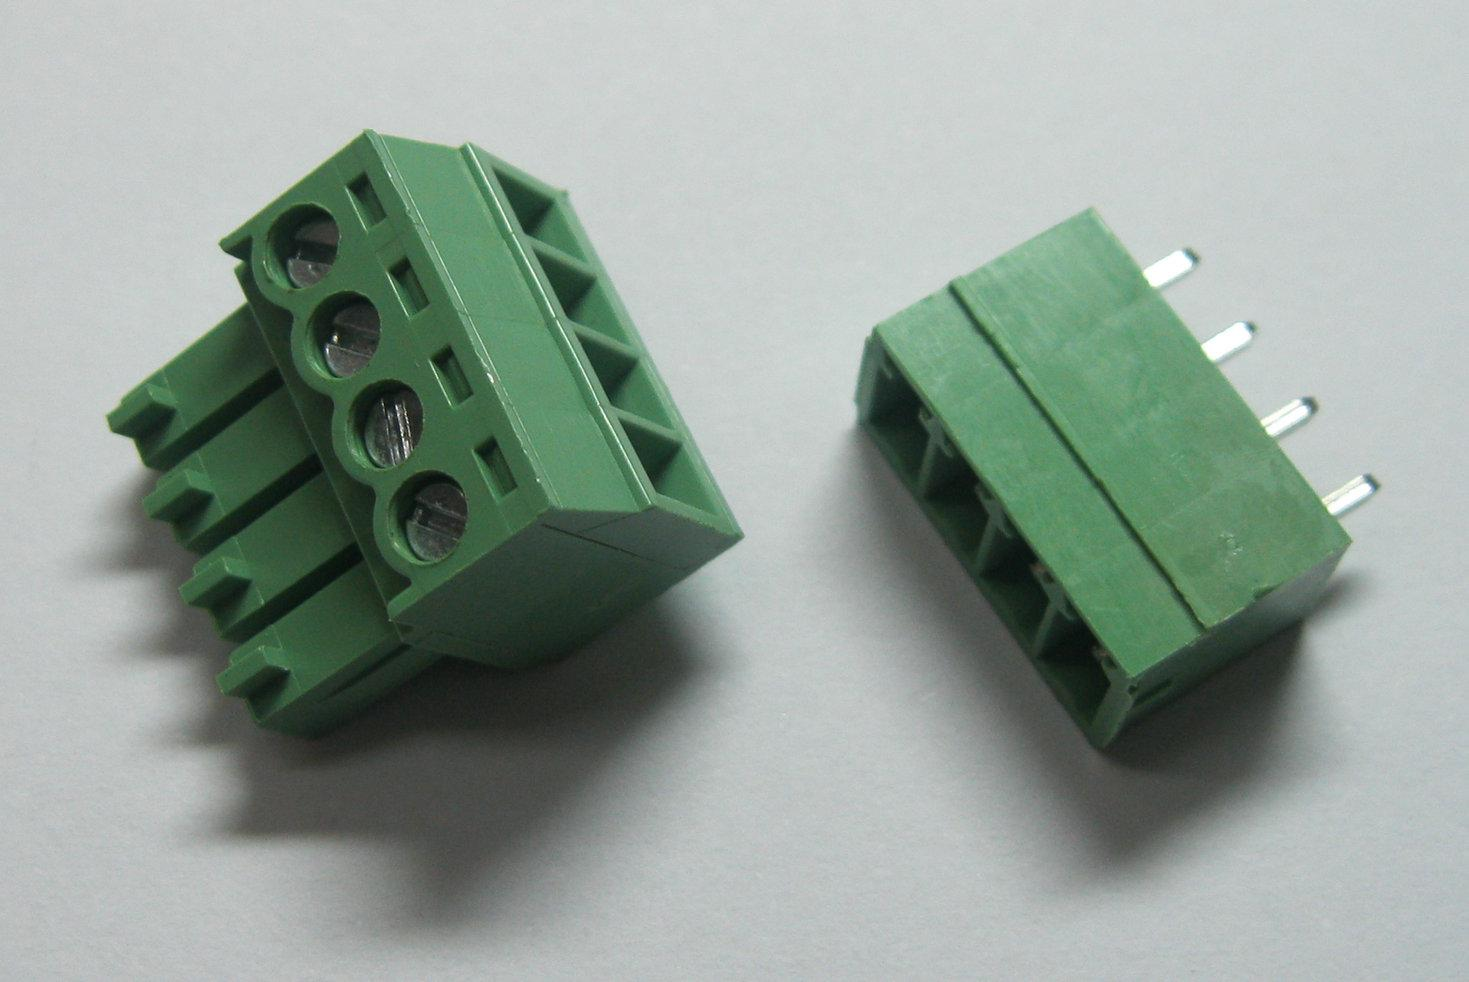 hight resolution of 4pin way pitch 3 5mm screw terminal block connector green color t type with pin